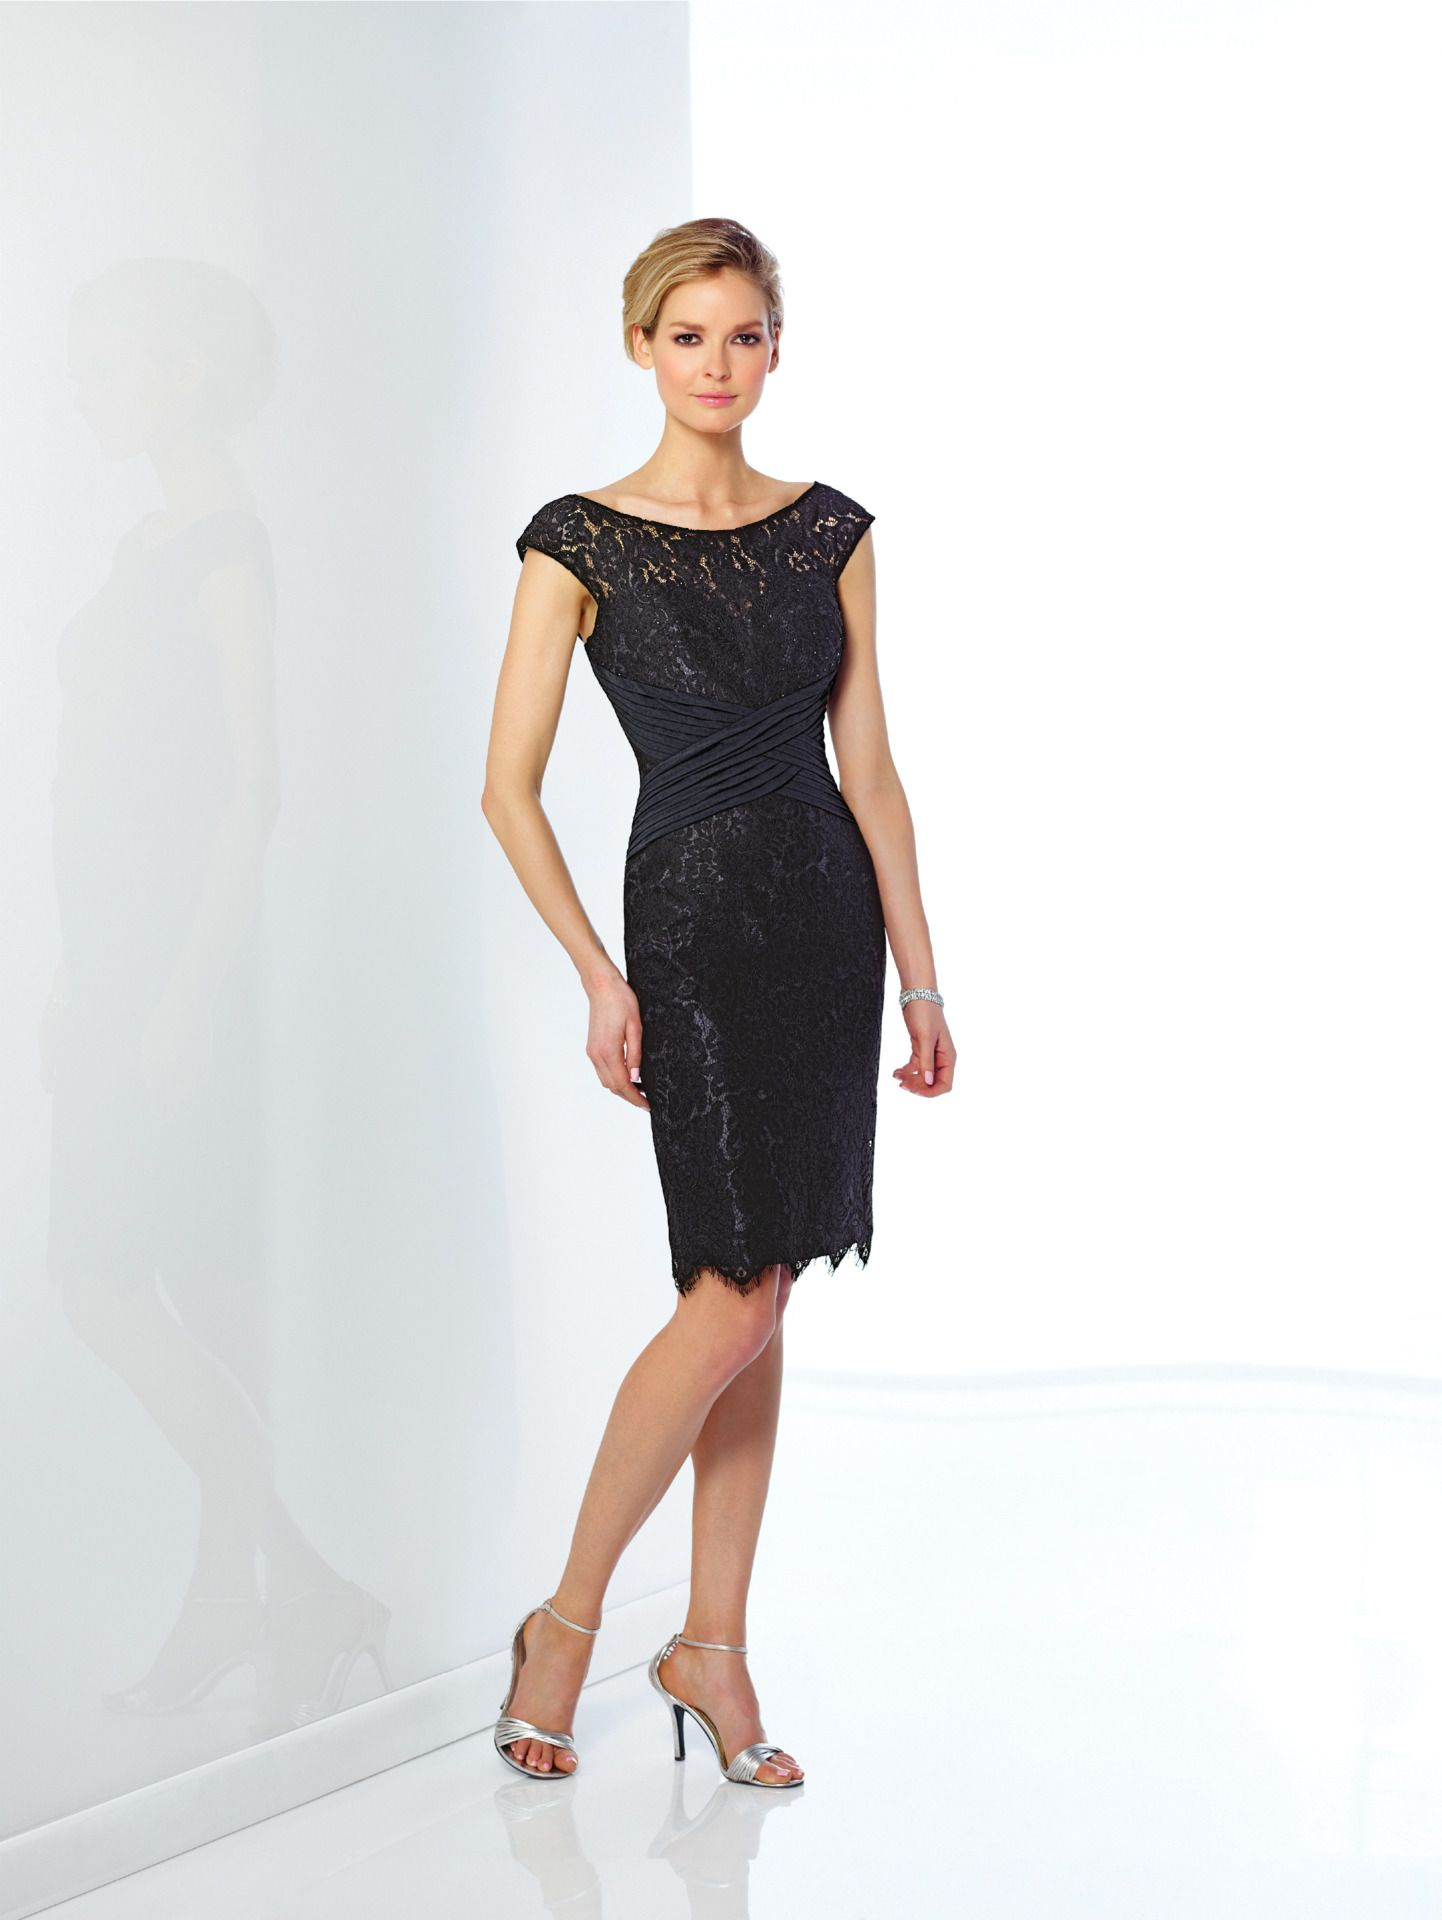 04d97724f0da Social Occasions by Mon Cheri Style 216875 available at WhatchamaCallit  Boutique